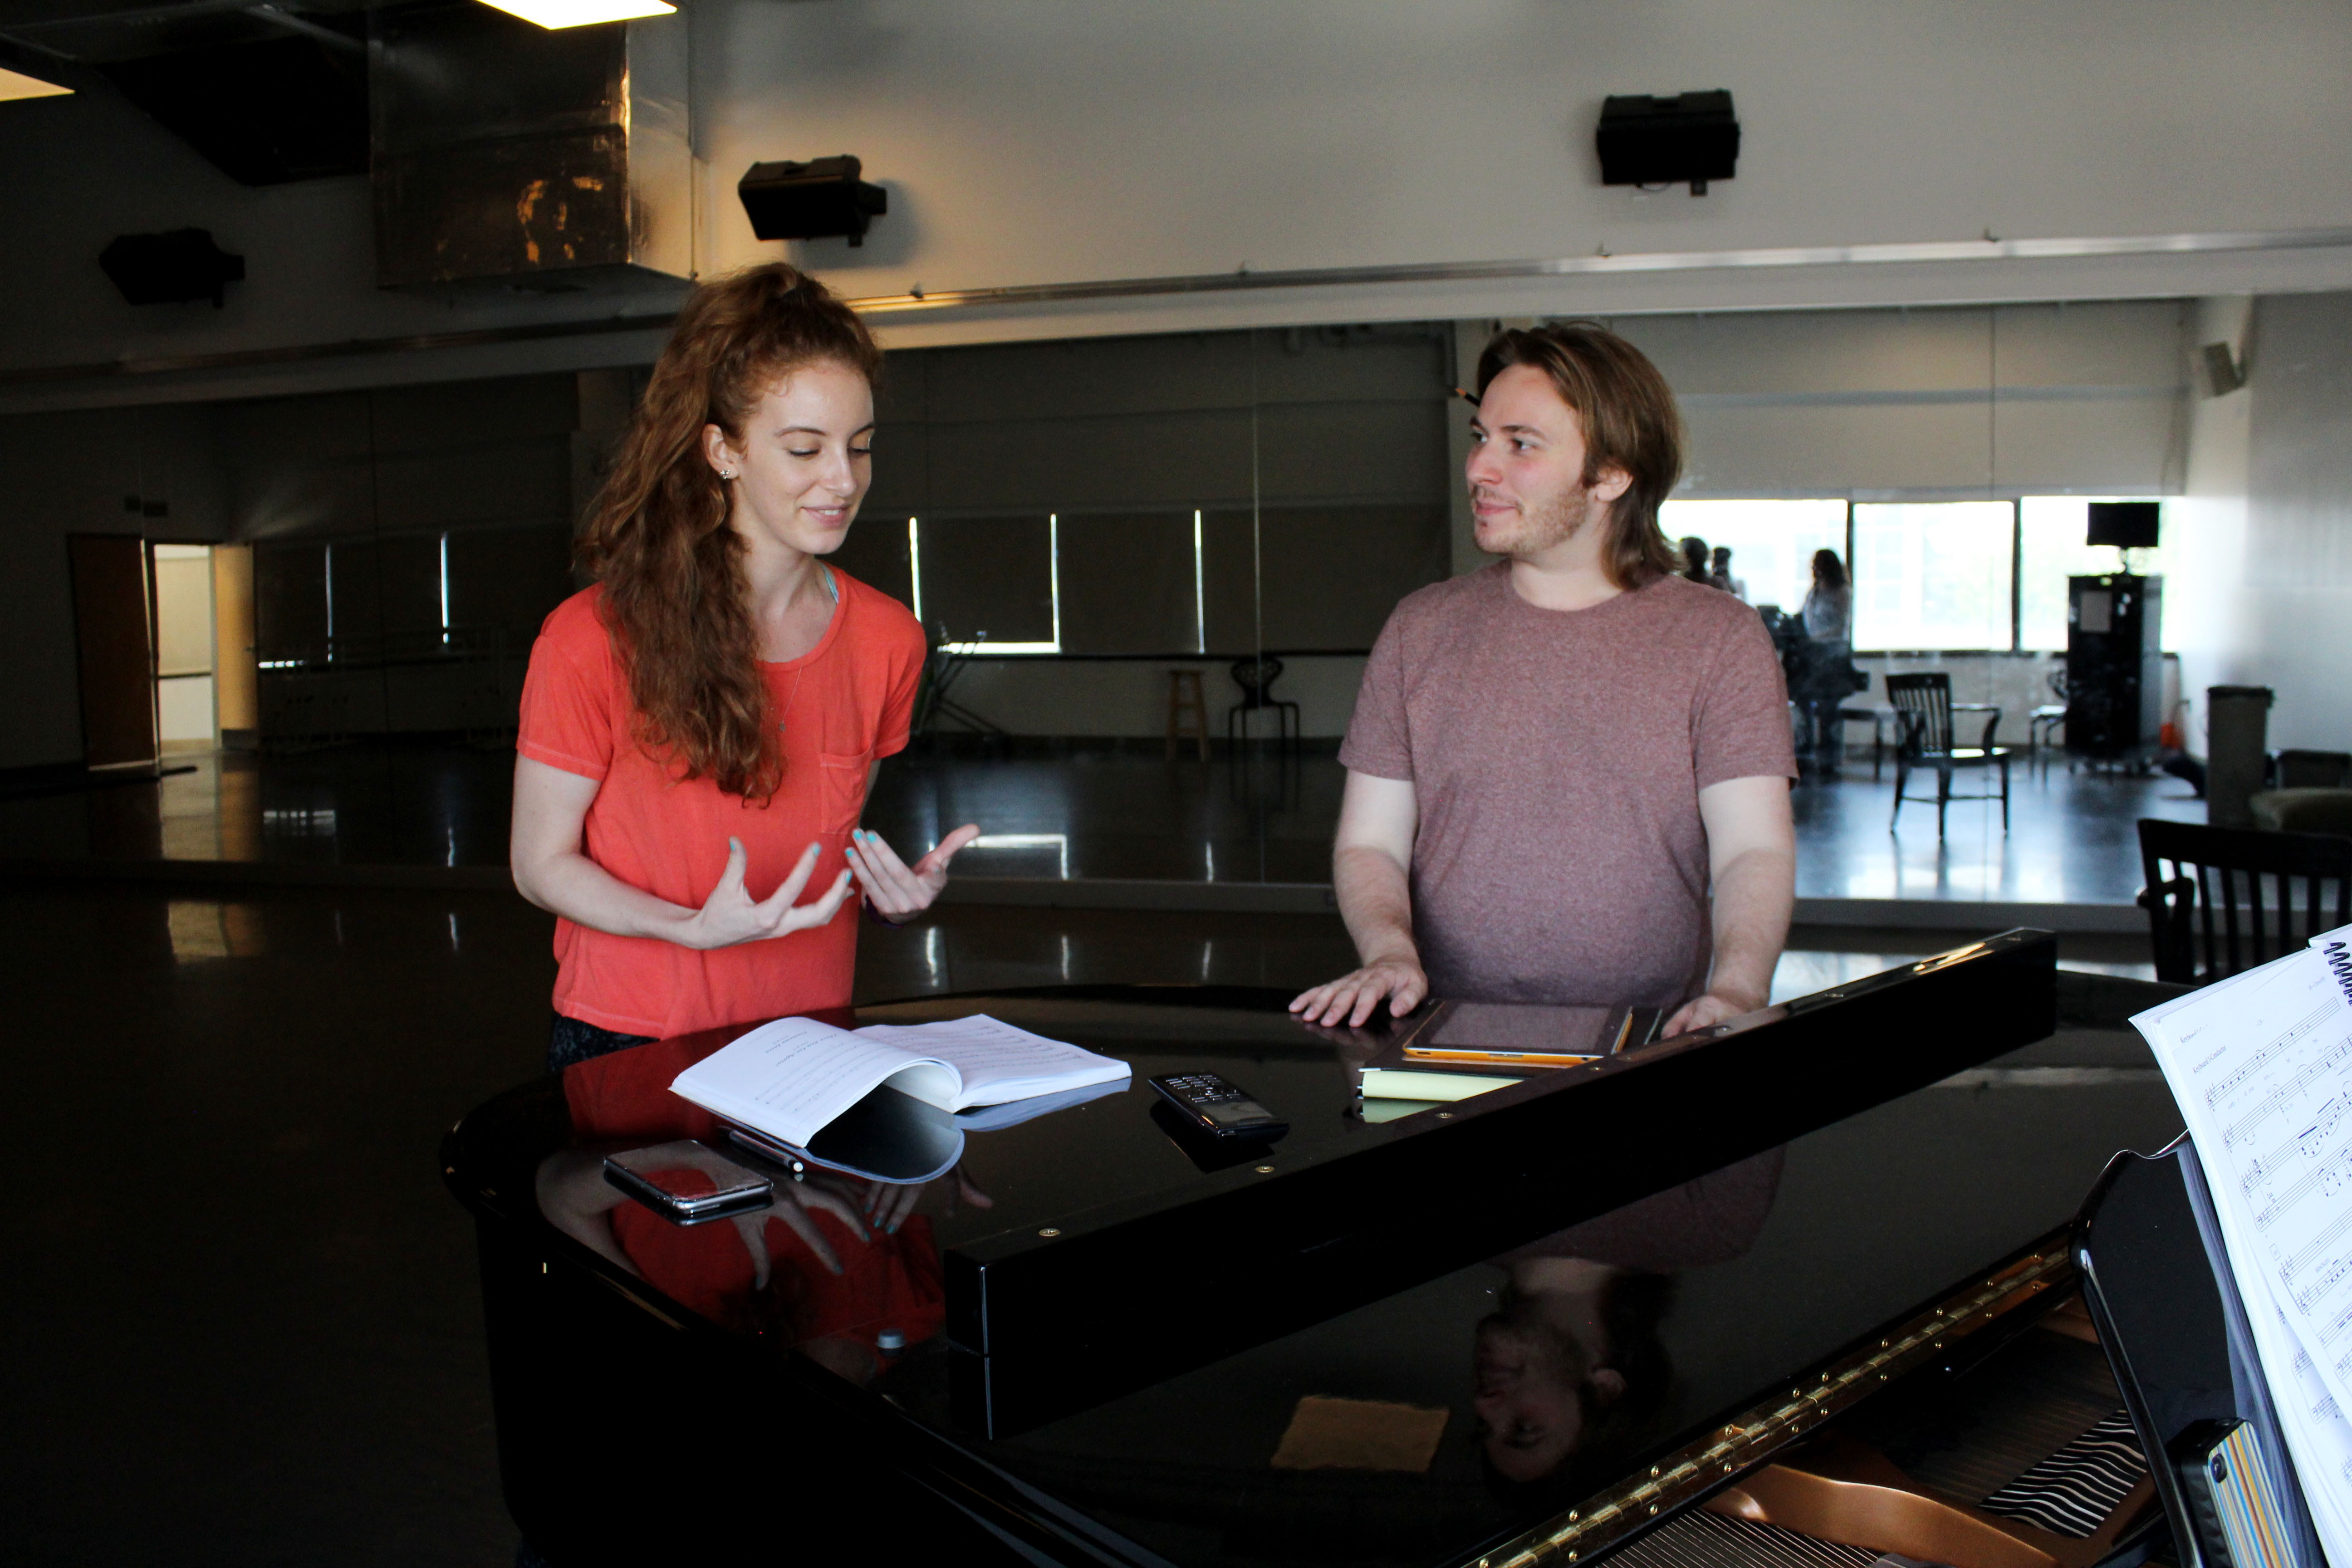 e05a61f9eff1c418279f_Lily_Davis_and_Chris_Beard_in_rehearsal.jpg